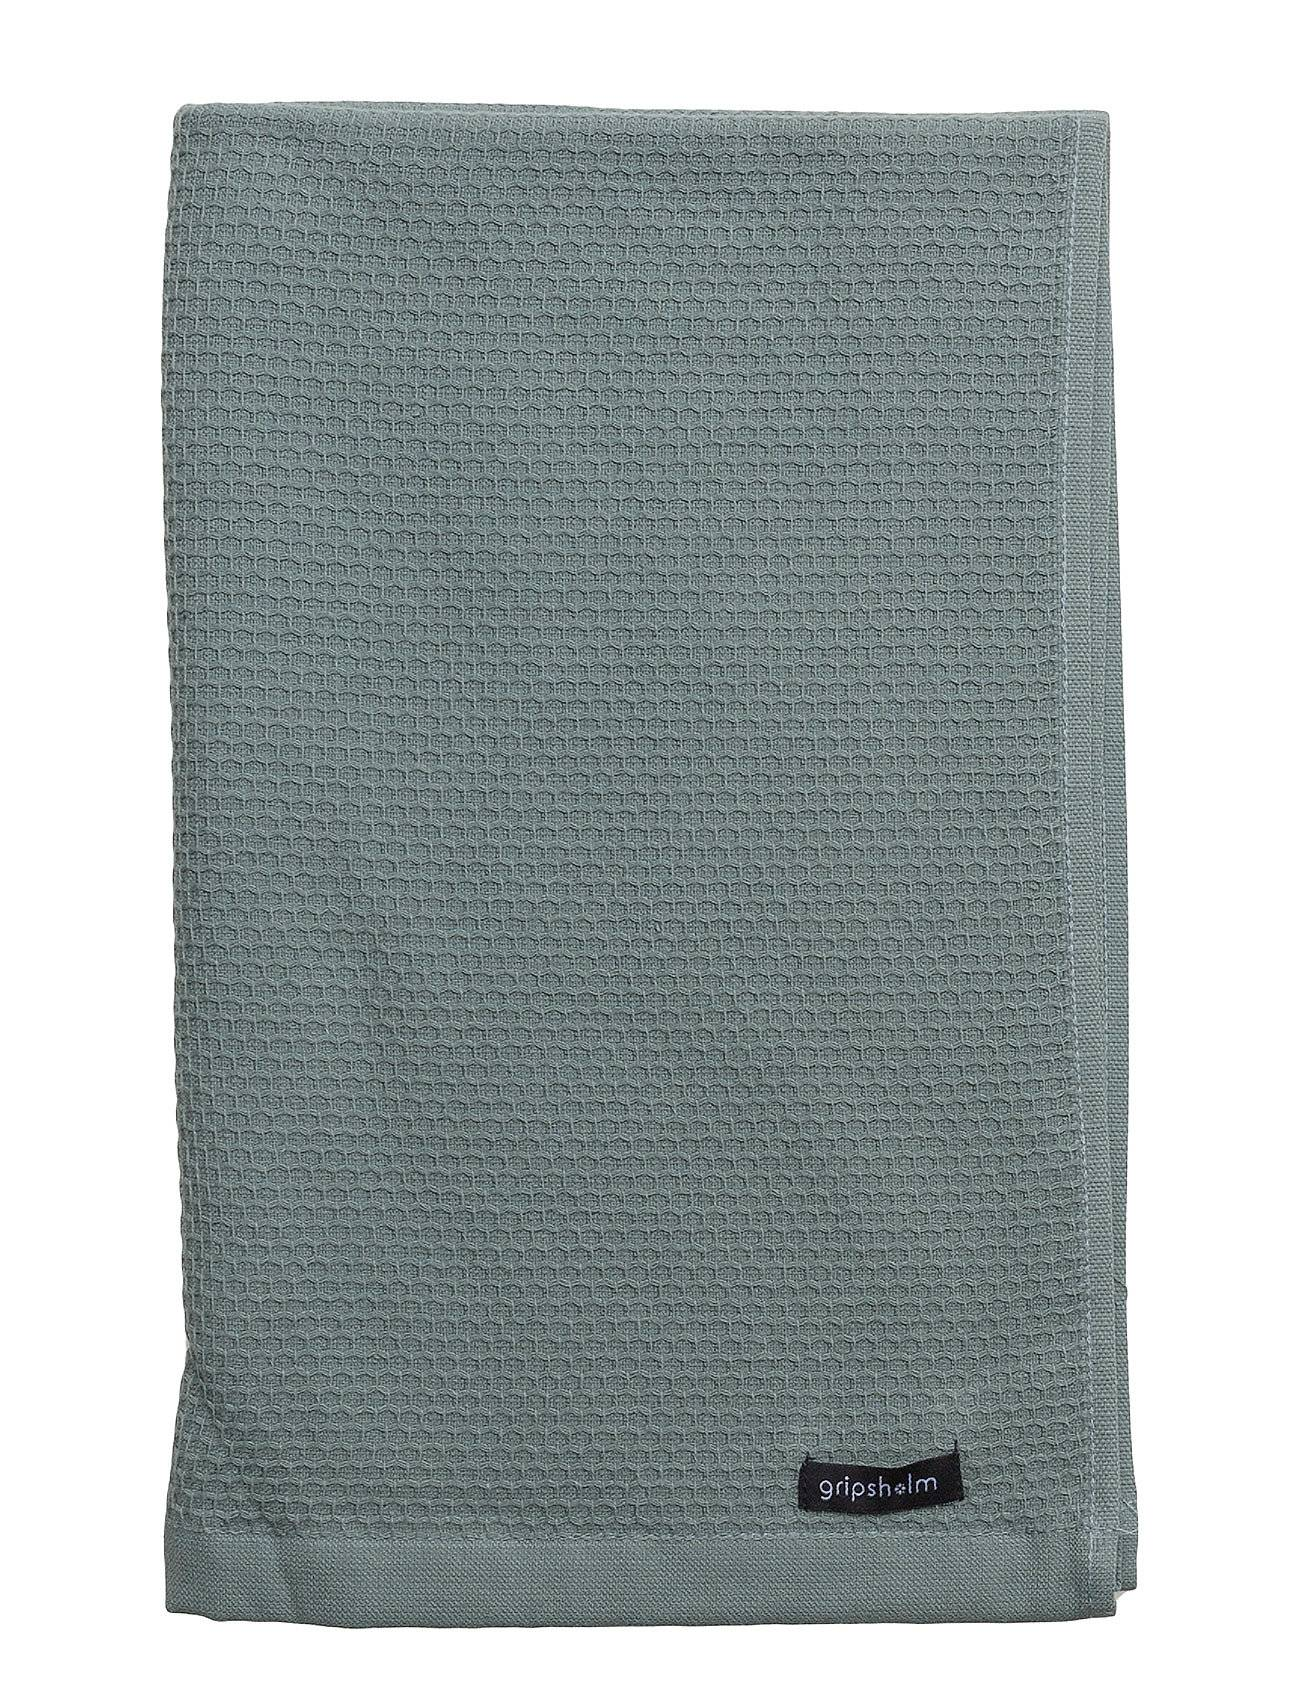 Gripsholm Towel Waffle Terry